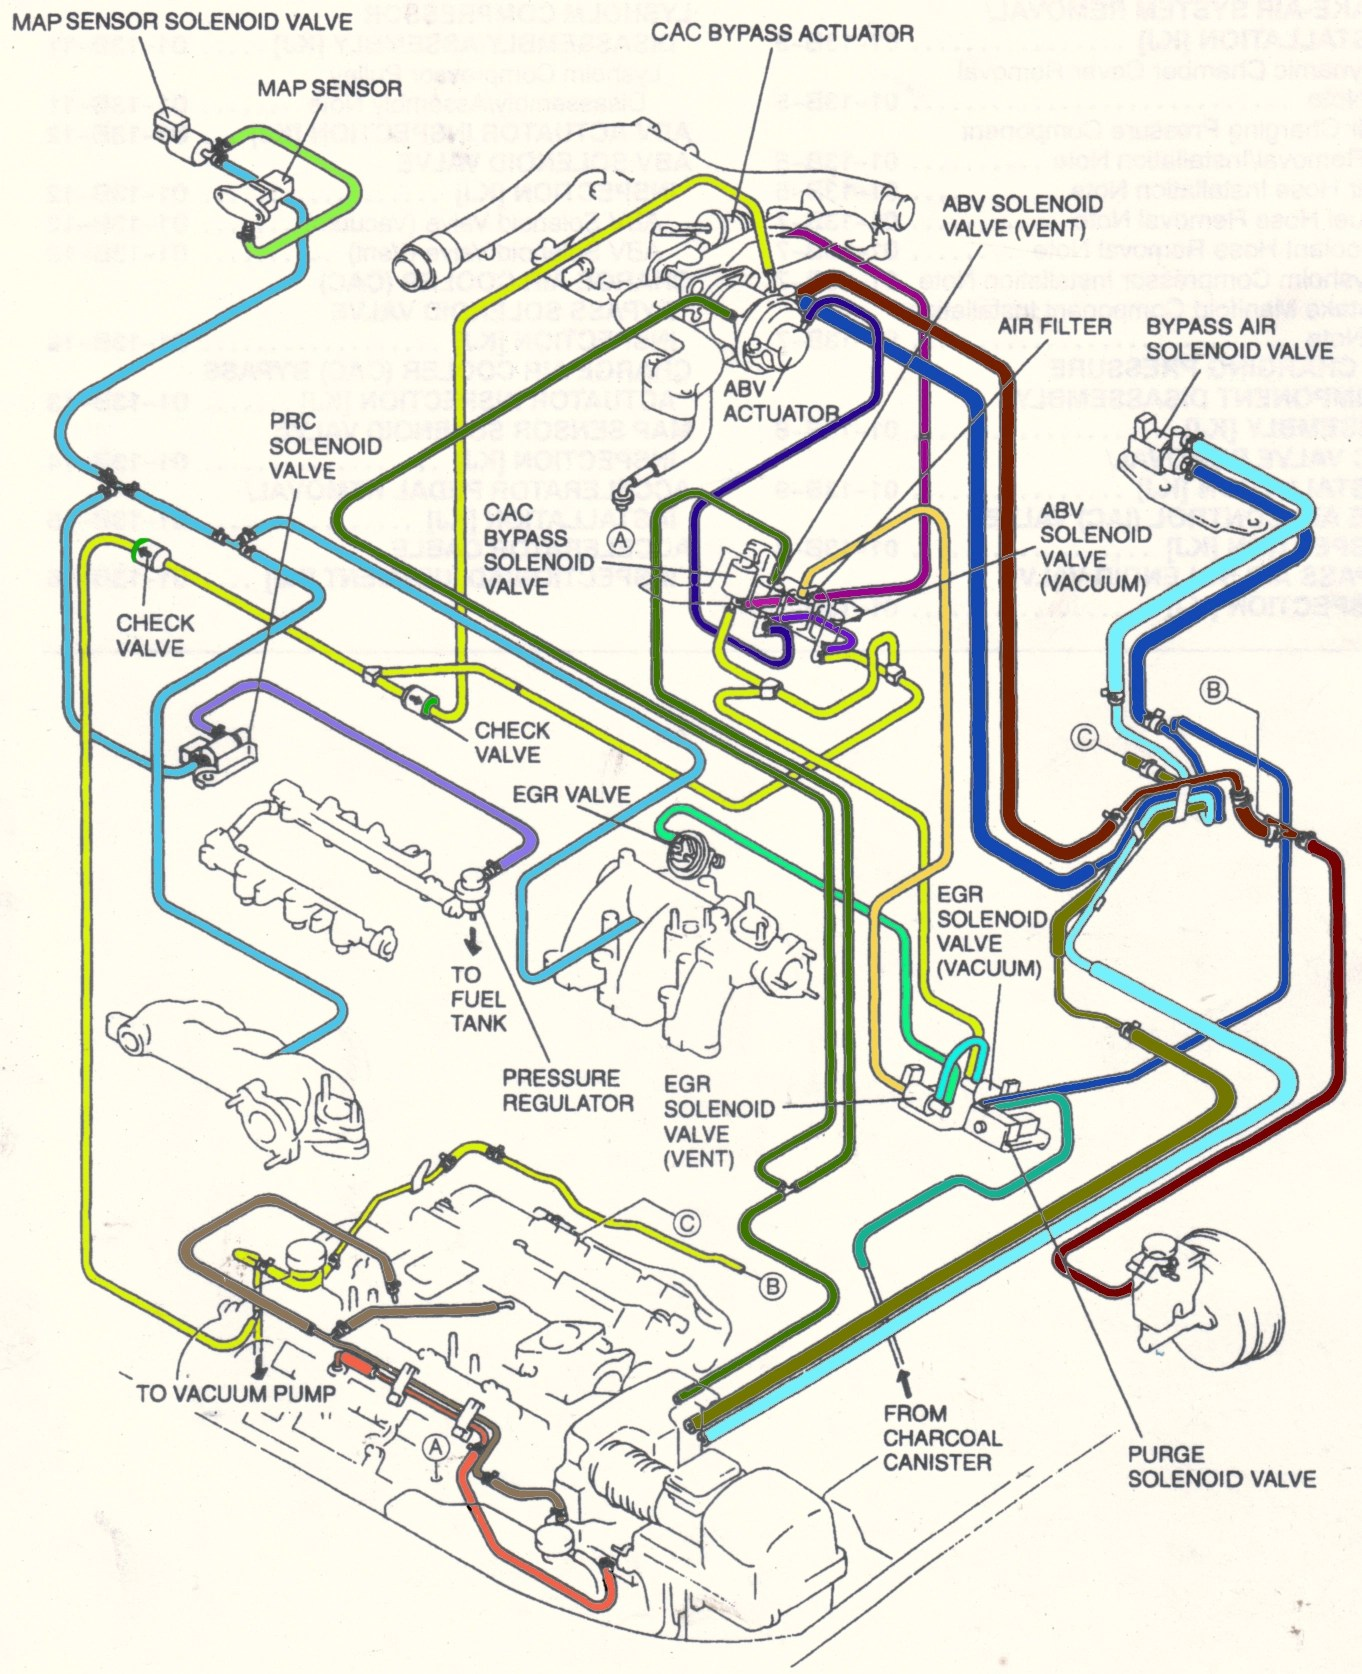 hight resolution of need a vacuum hose diagram for a 2001 mazda millenia with a 2 2001 mazda millenia engine diagram